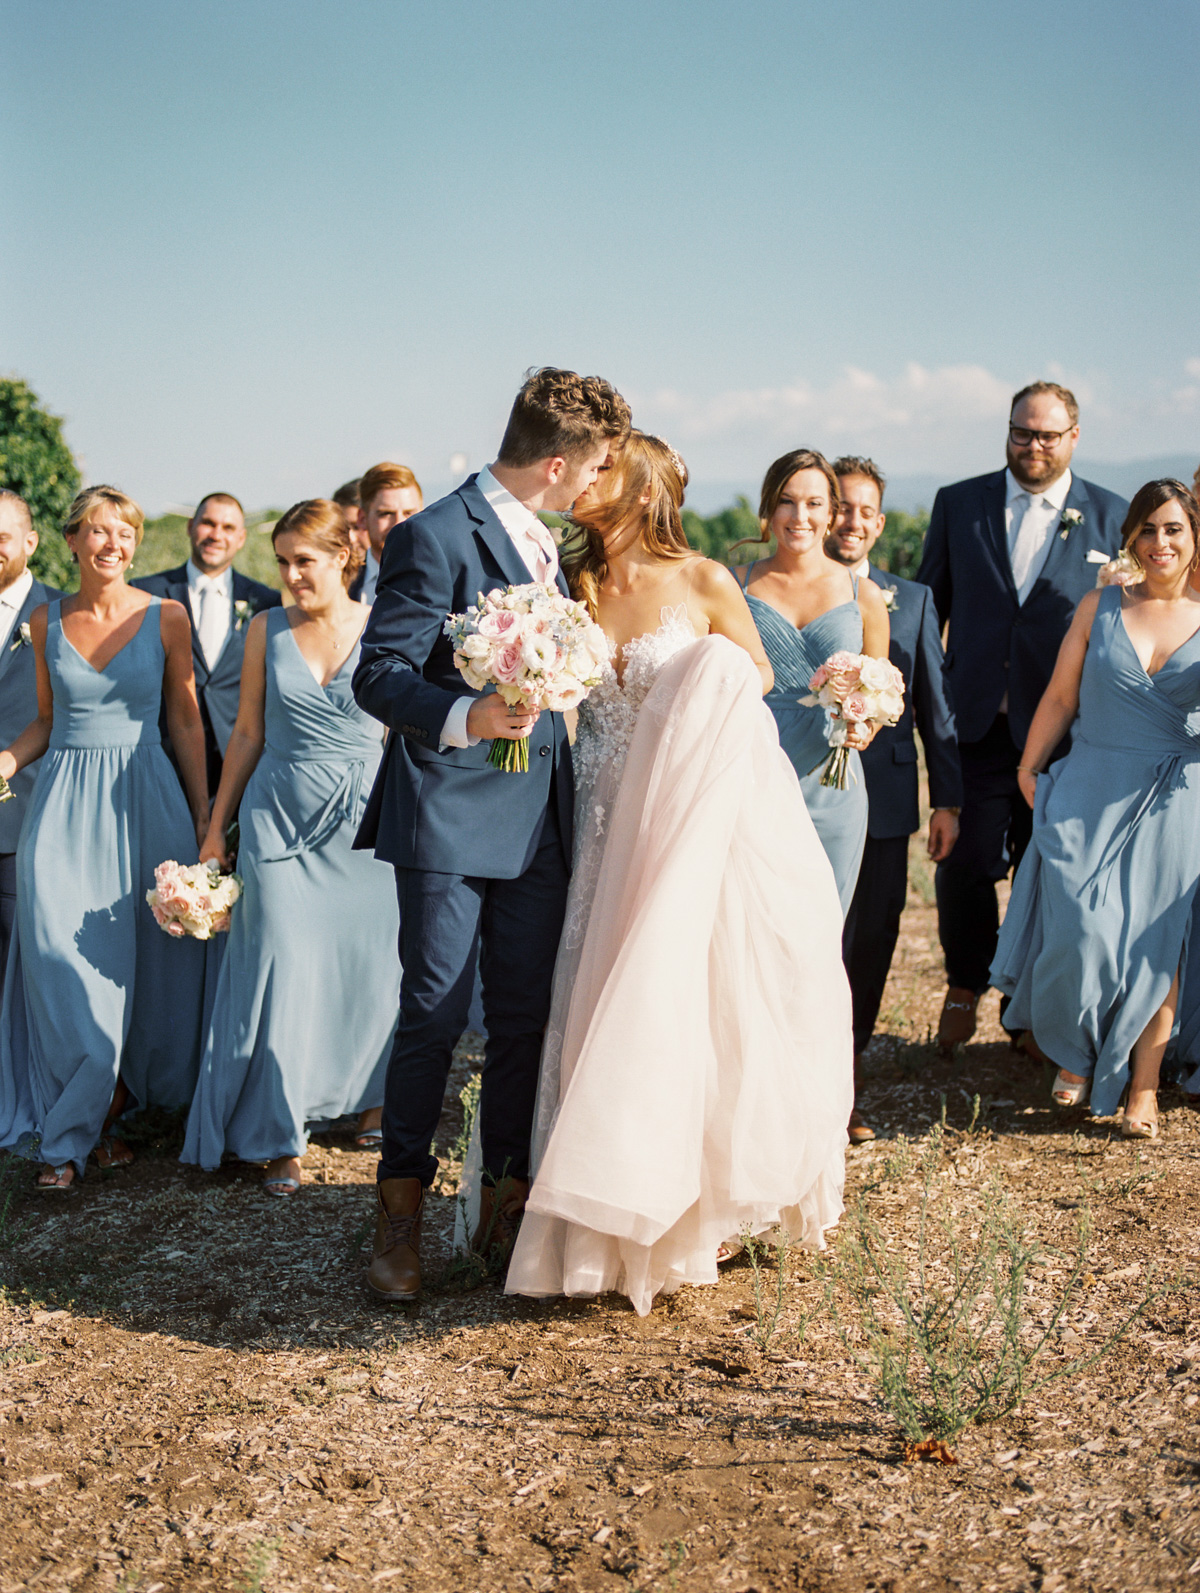 Bridal party walking through Wiens winery in Temecula   Harrison & Jocelyne's gorgeous Temecula wedding at Wiens Family Cellars captured by Betsy & John Photography